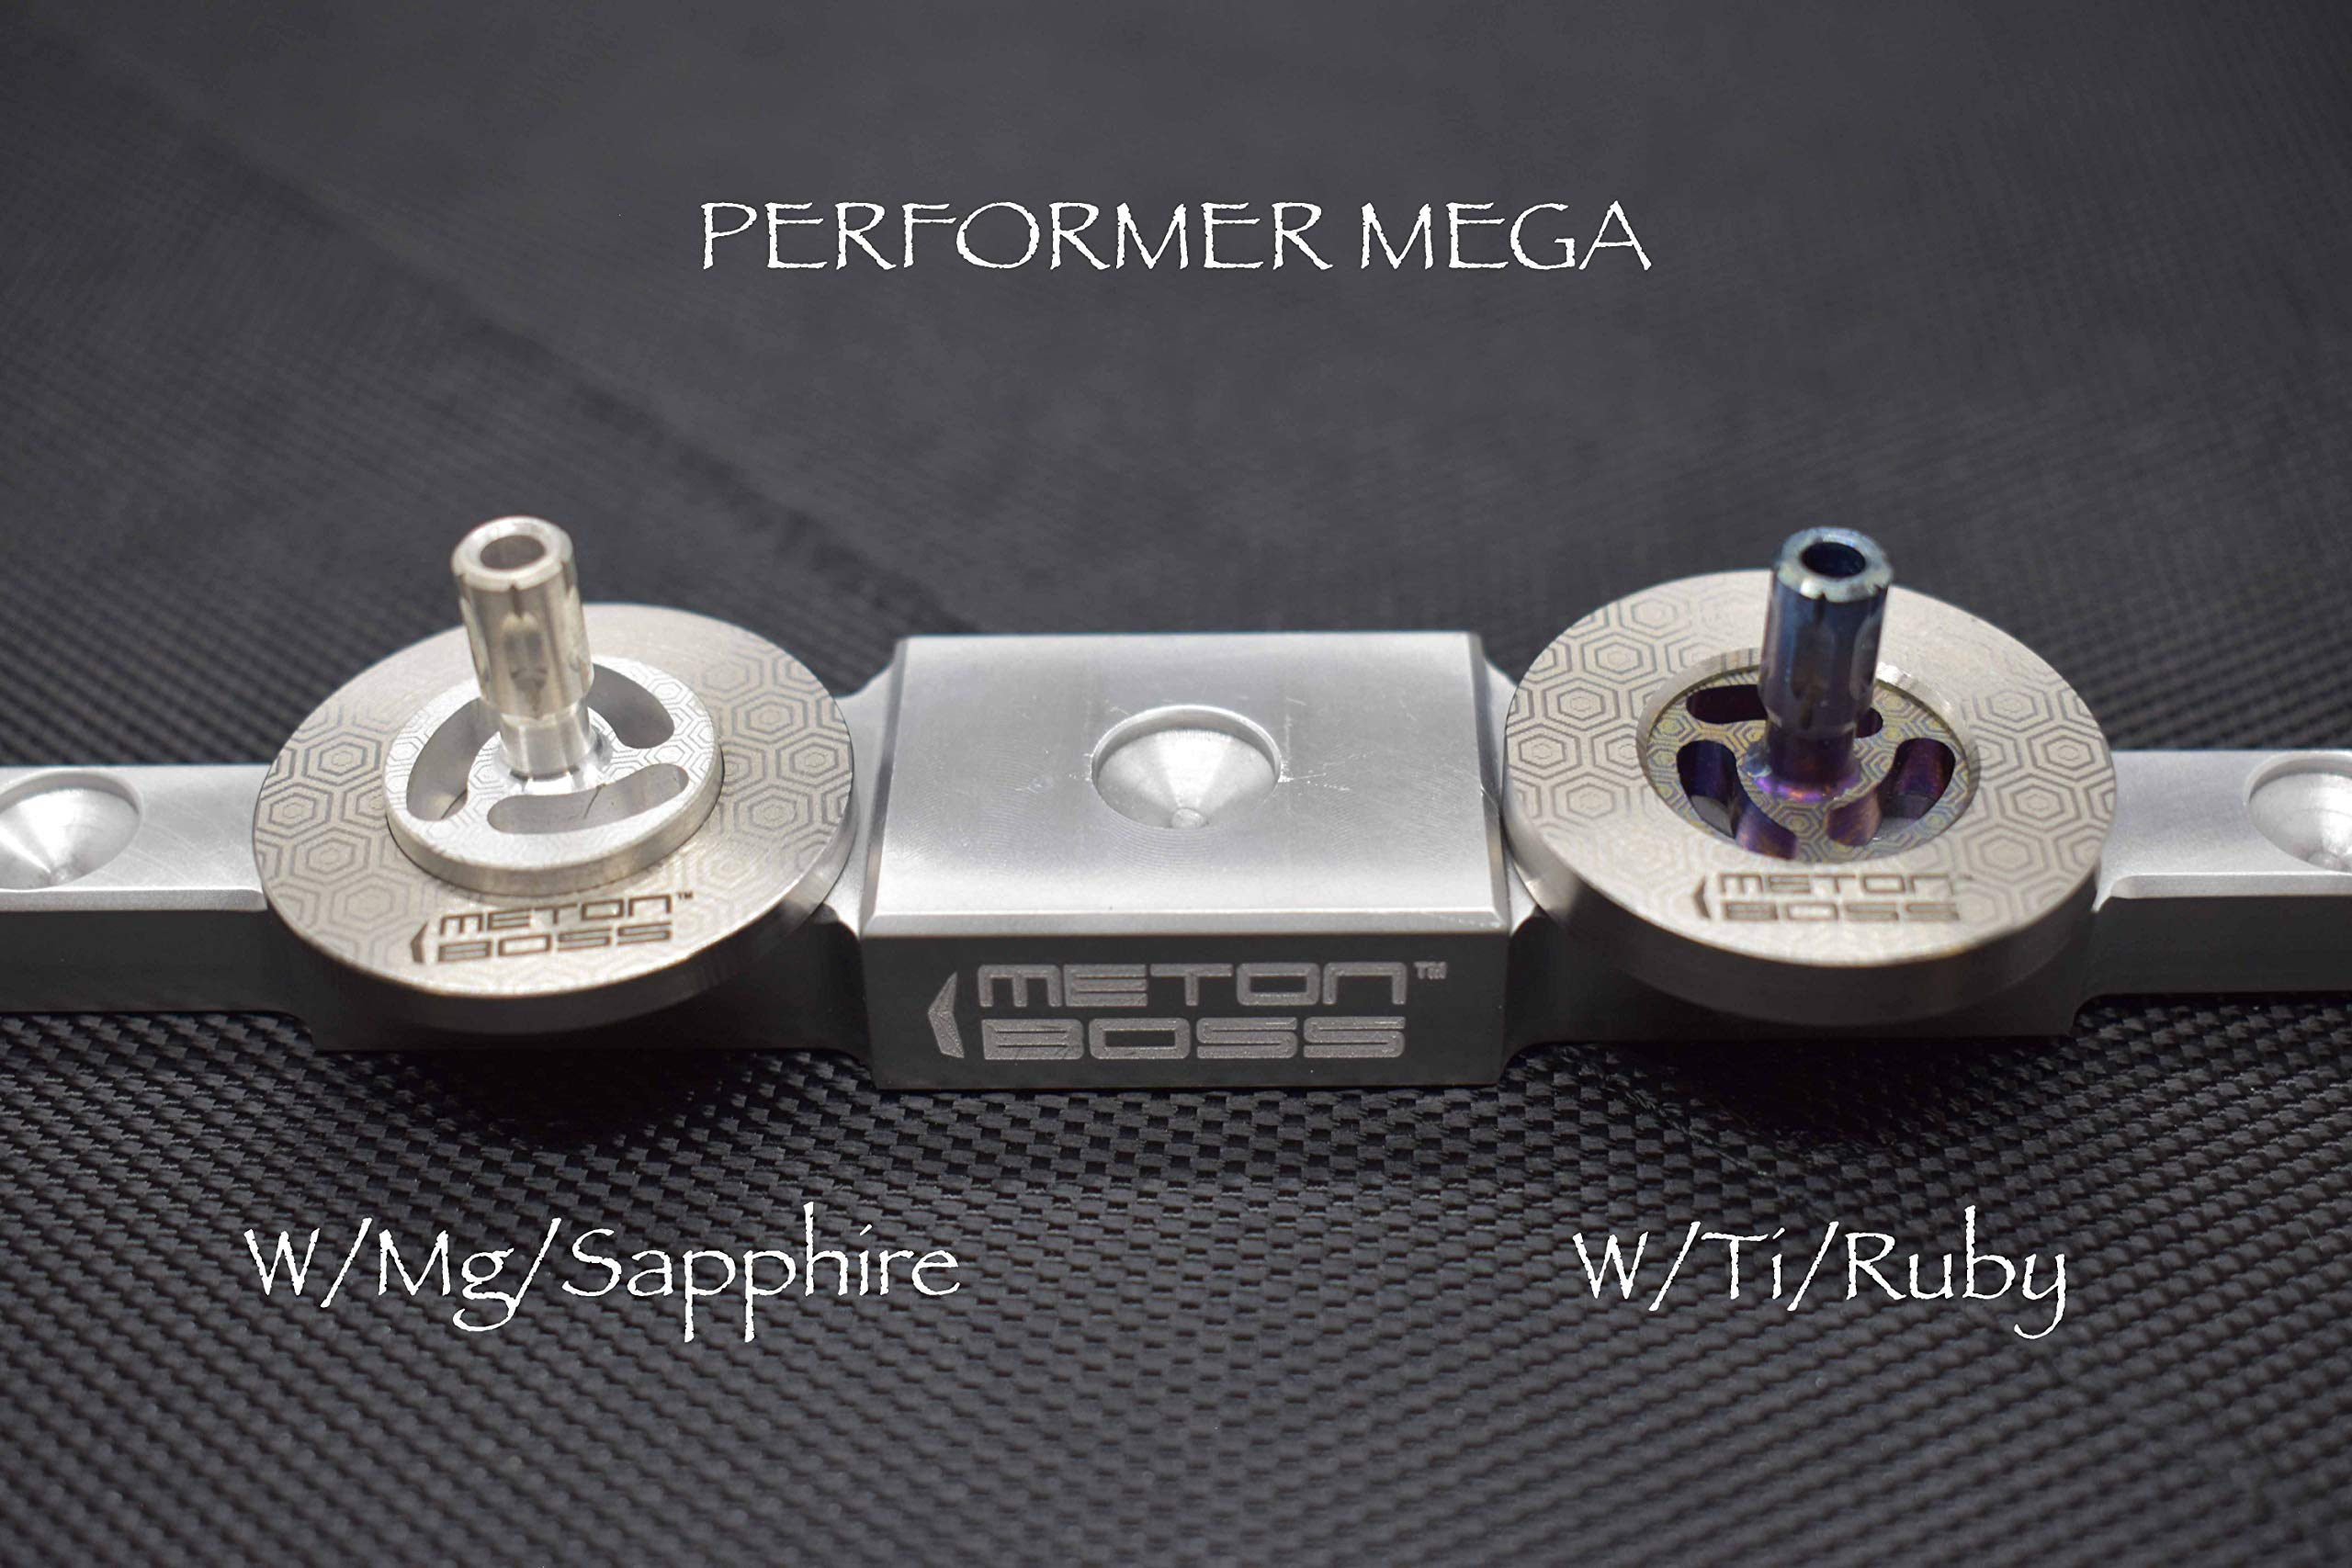 MetonBoss Spinning Tops - Tungsten Rotor / Precision Milled Titanium Core with Ruby Bearing | Everyday Carry Birthday Gift Ideas | Collectable Fidget (Performer MEGA) by MetonBoss (Image #7)